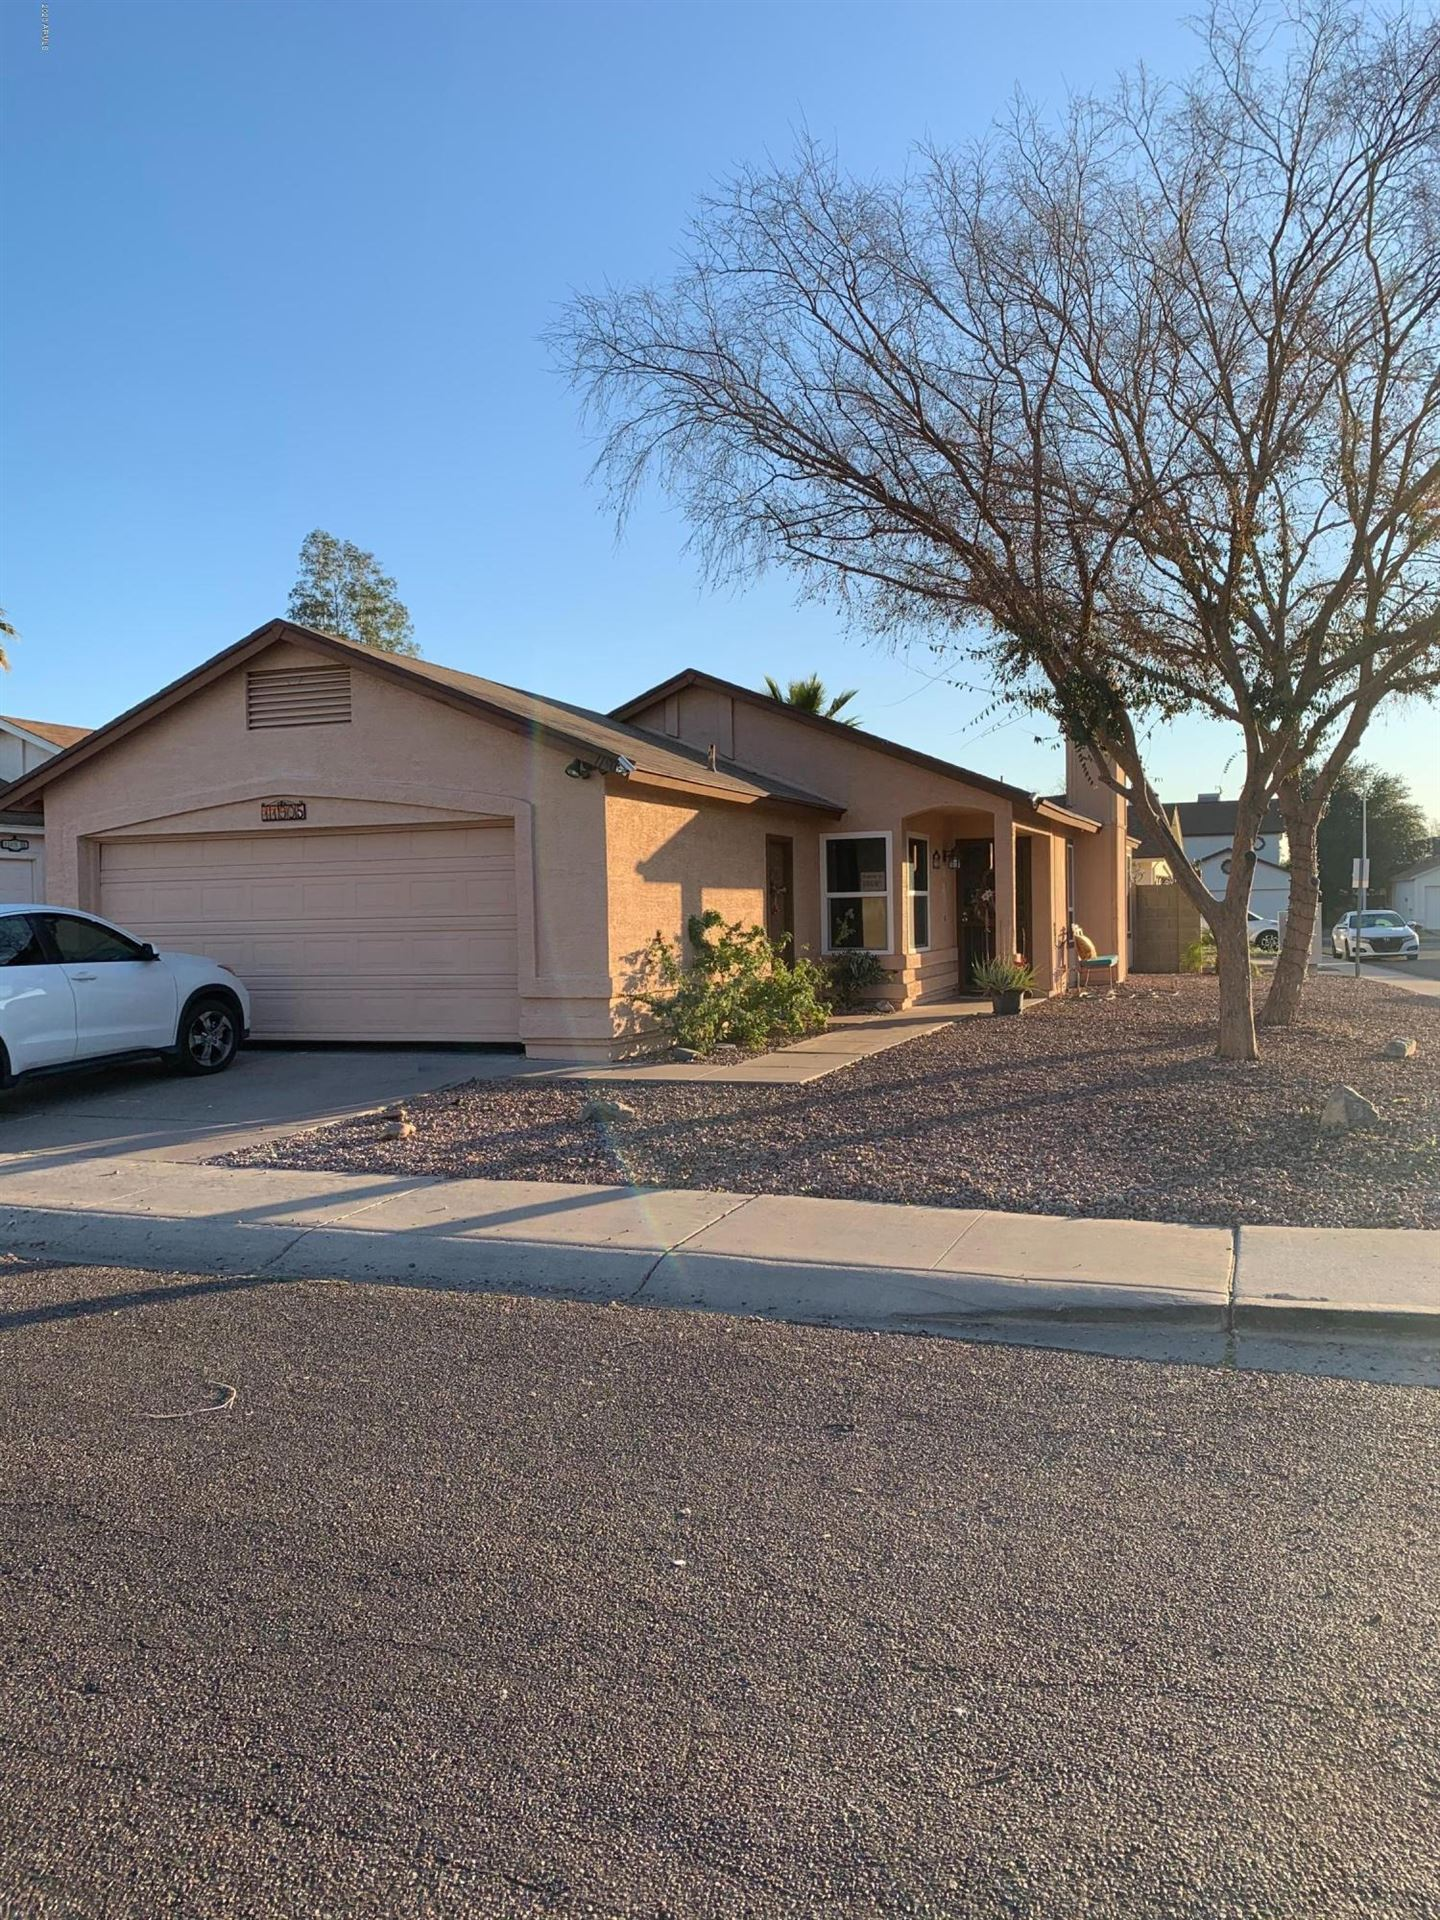 11905 N 74TH Lane, Peoria, AZ 85345 - MLS#: 6018551